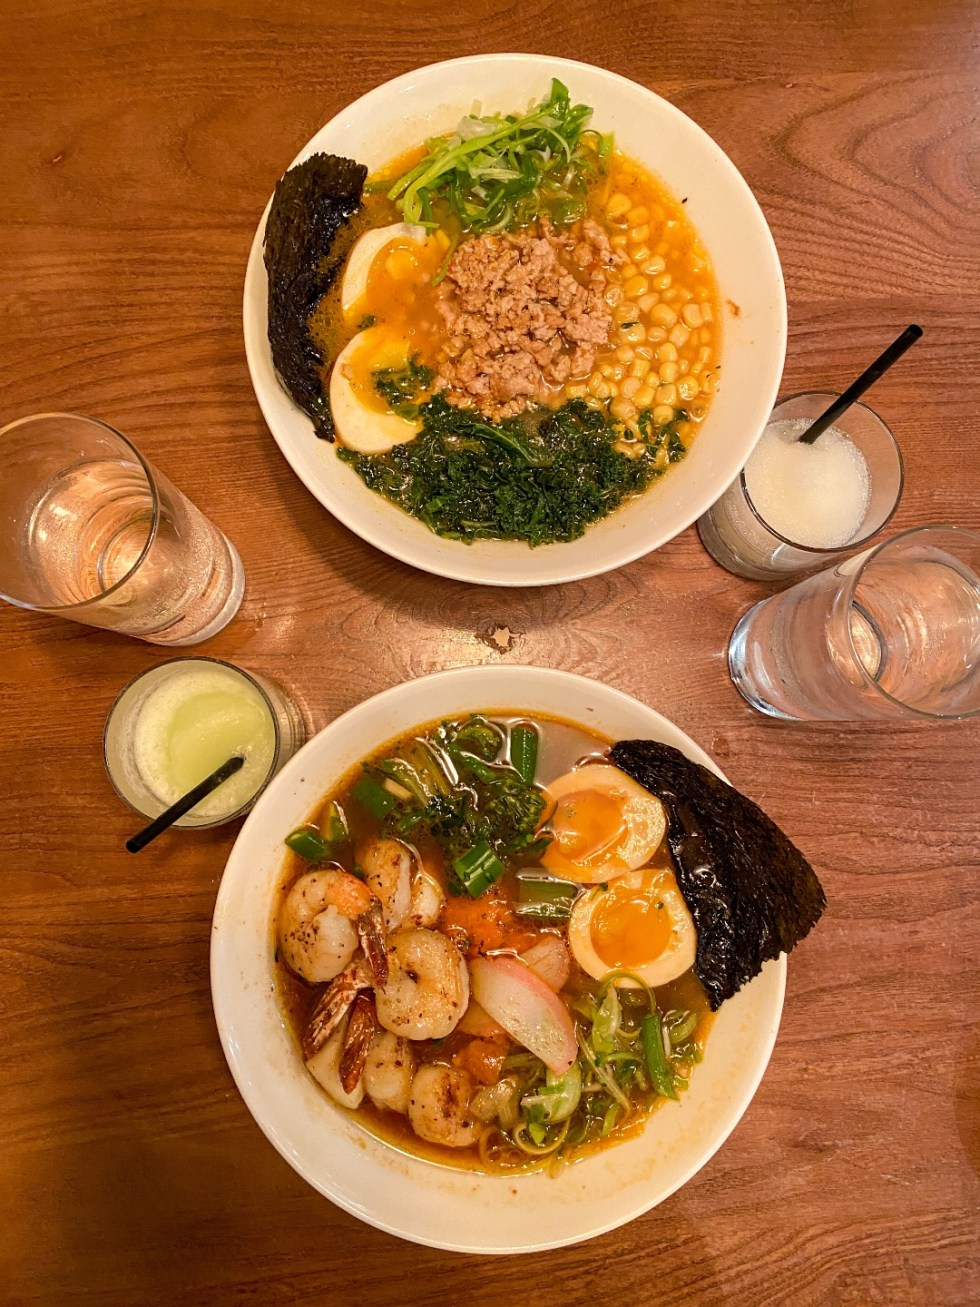 The Ultimate Girls' Day Out in Raleigh - I'm Fixin' To - @imfixintoblog | Girls Day Out In Raleigh by popular NC lifestyle blog, I'm Fixin' To: image of bowls of ramen and cocktail drinks.